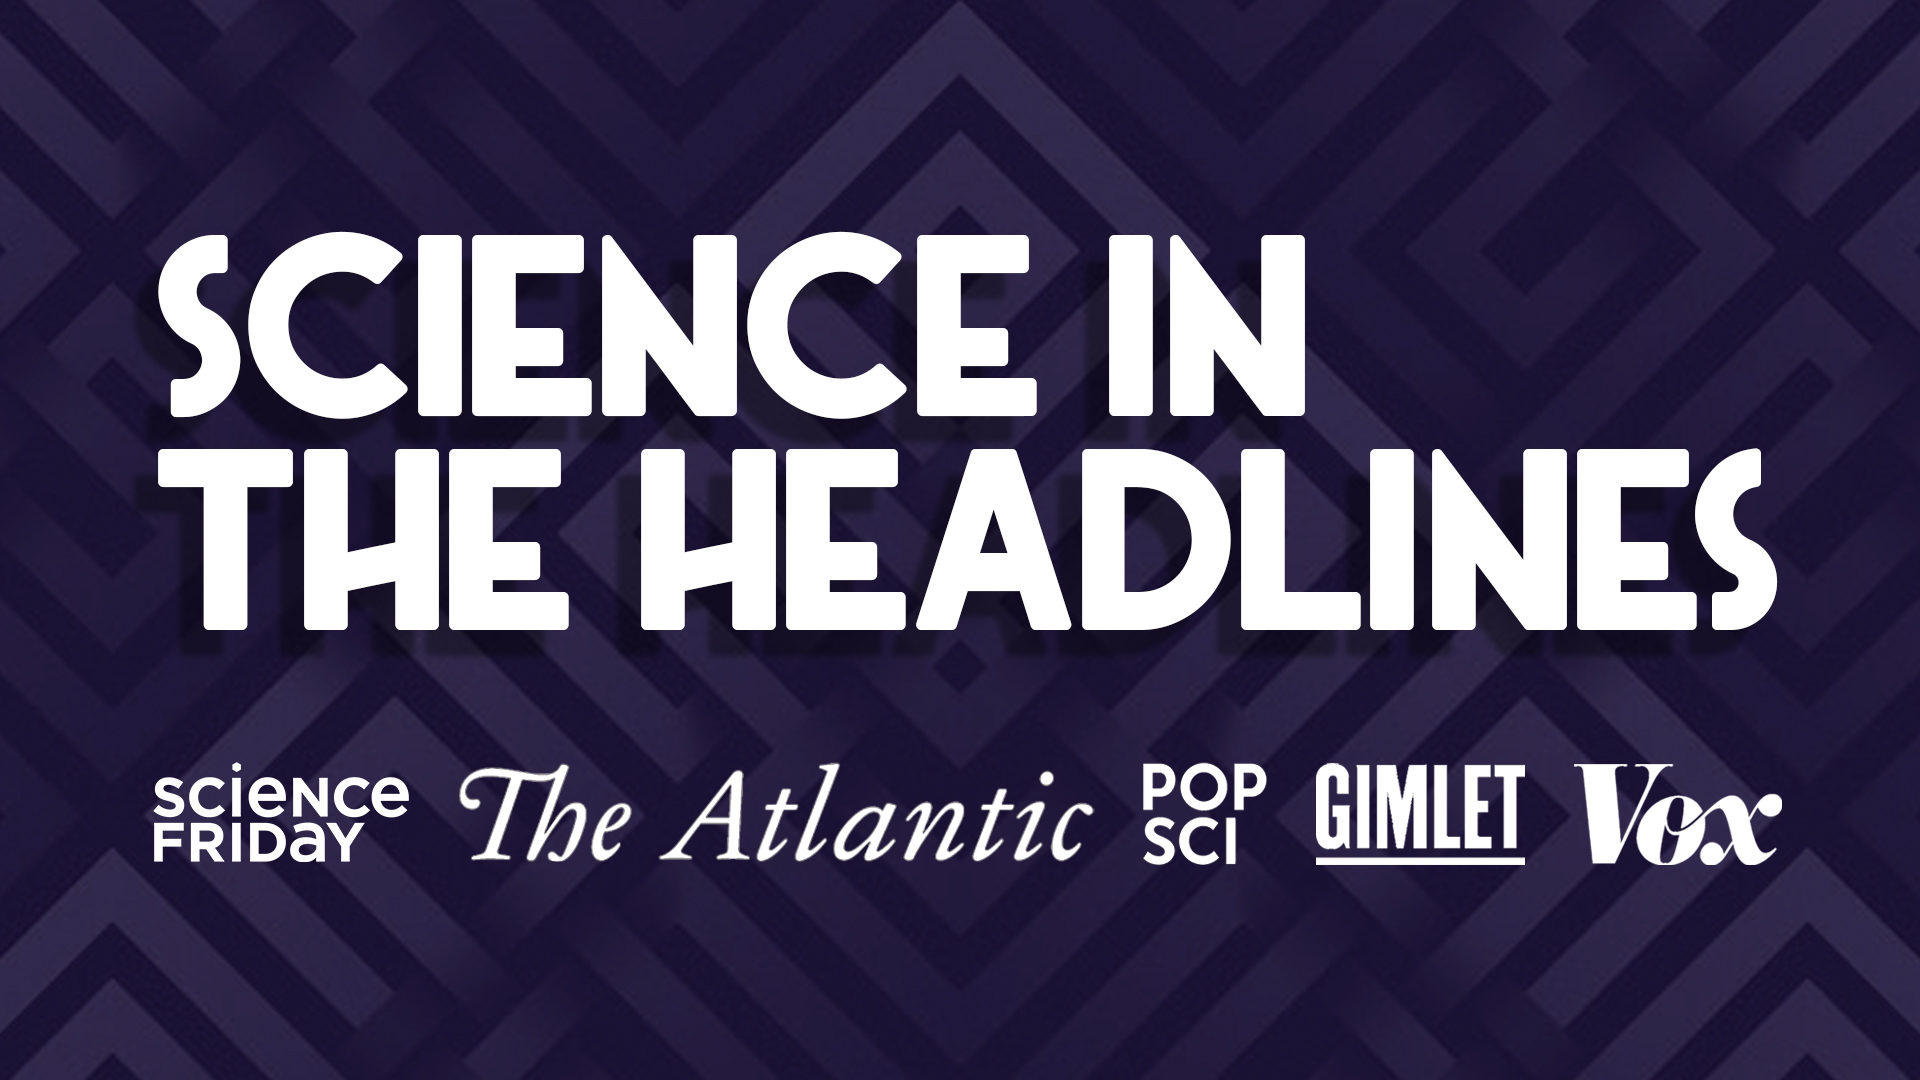 "a purple poster that reads ""science in the headlines"" with logos of media companies, including science friday, the atlantic, popsci, gimlet, and vox"